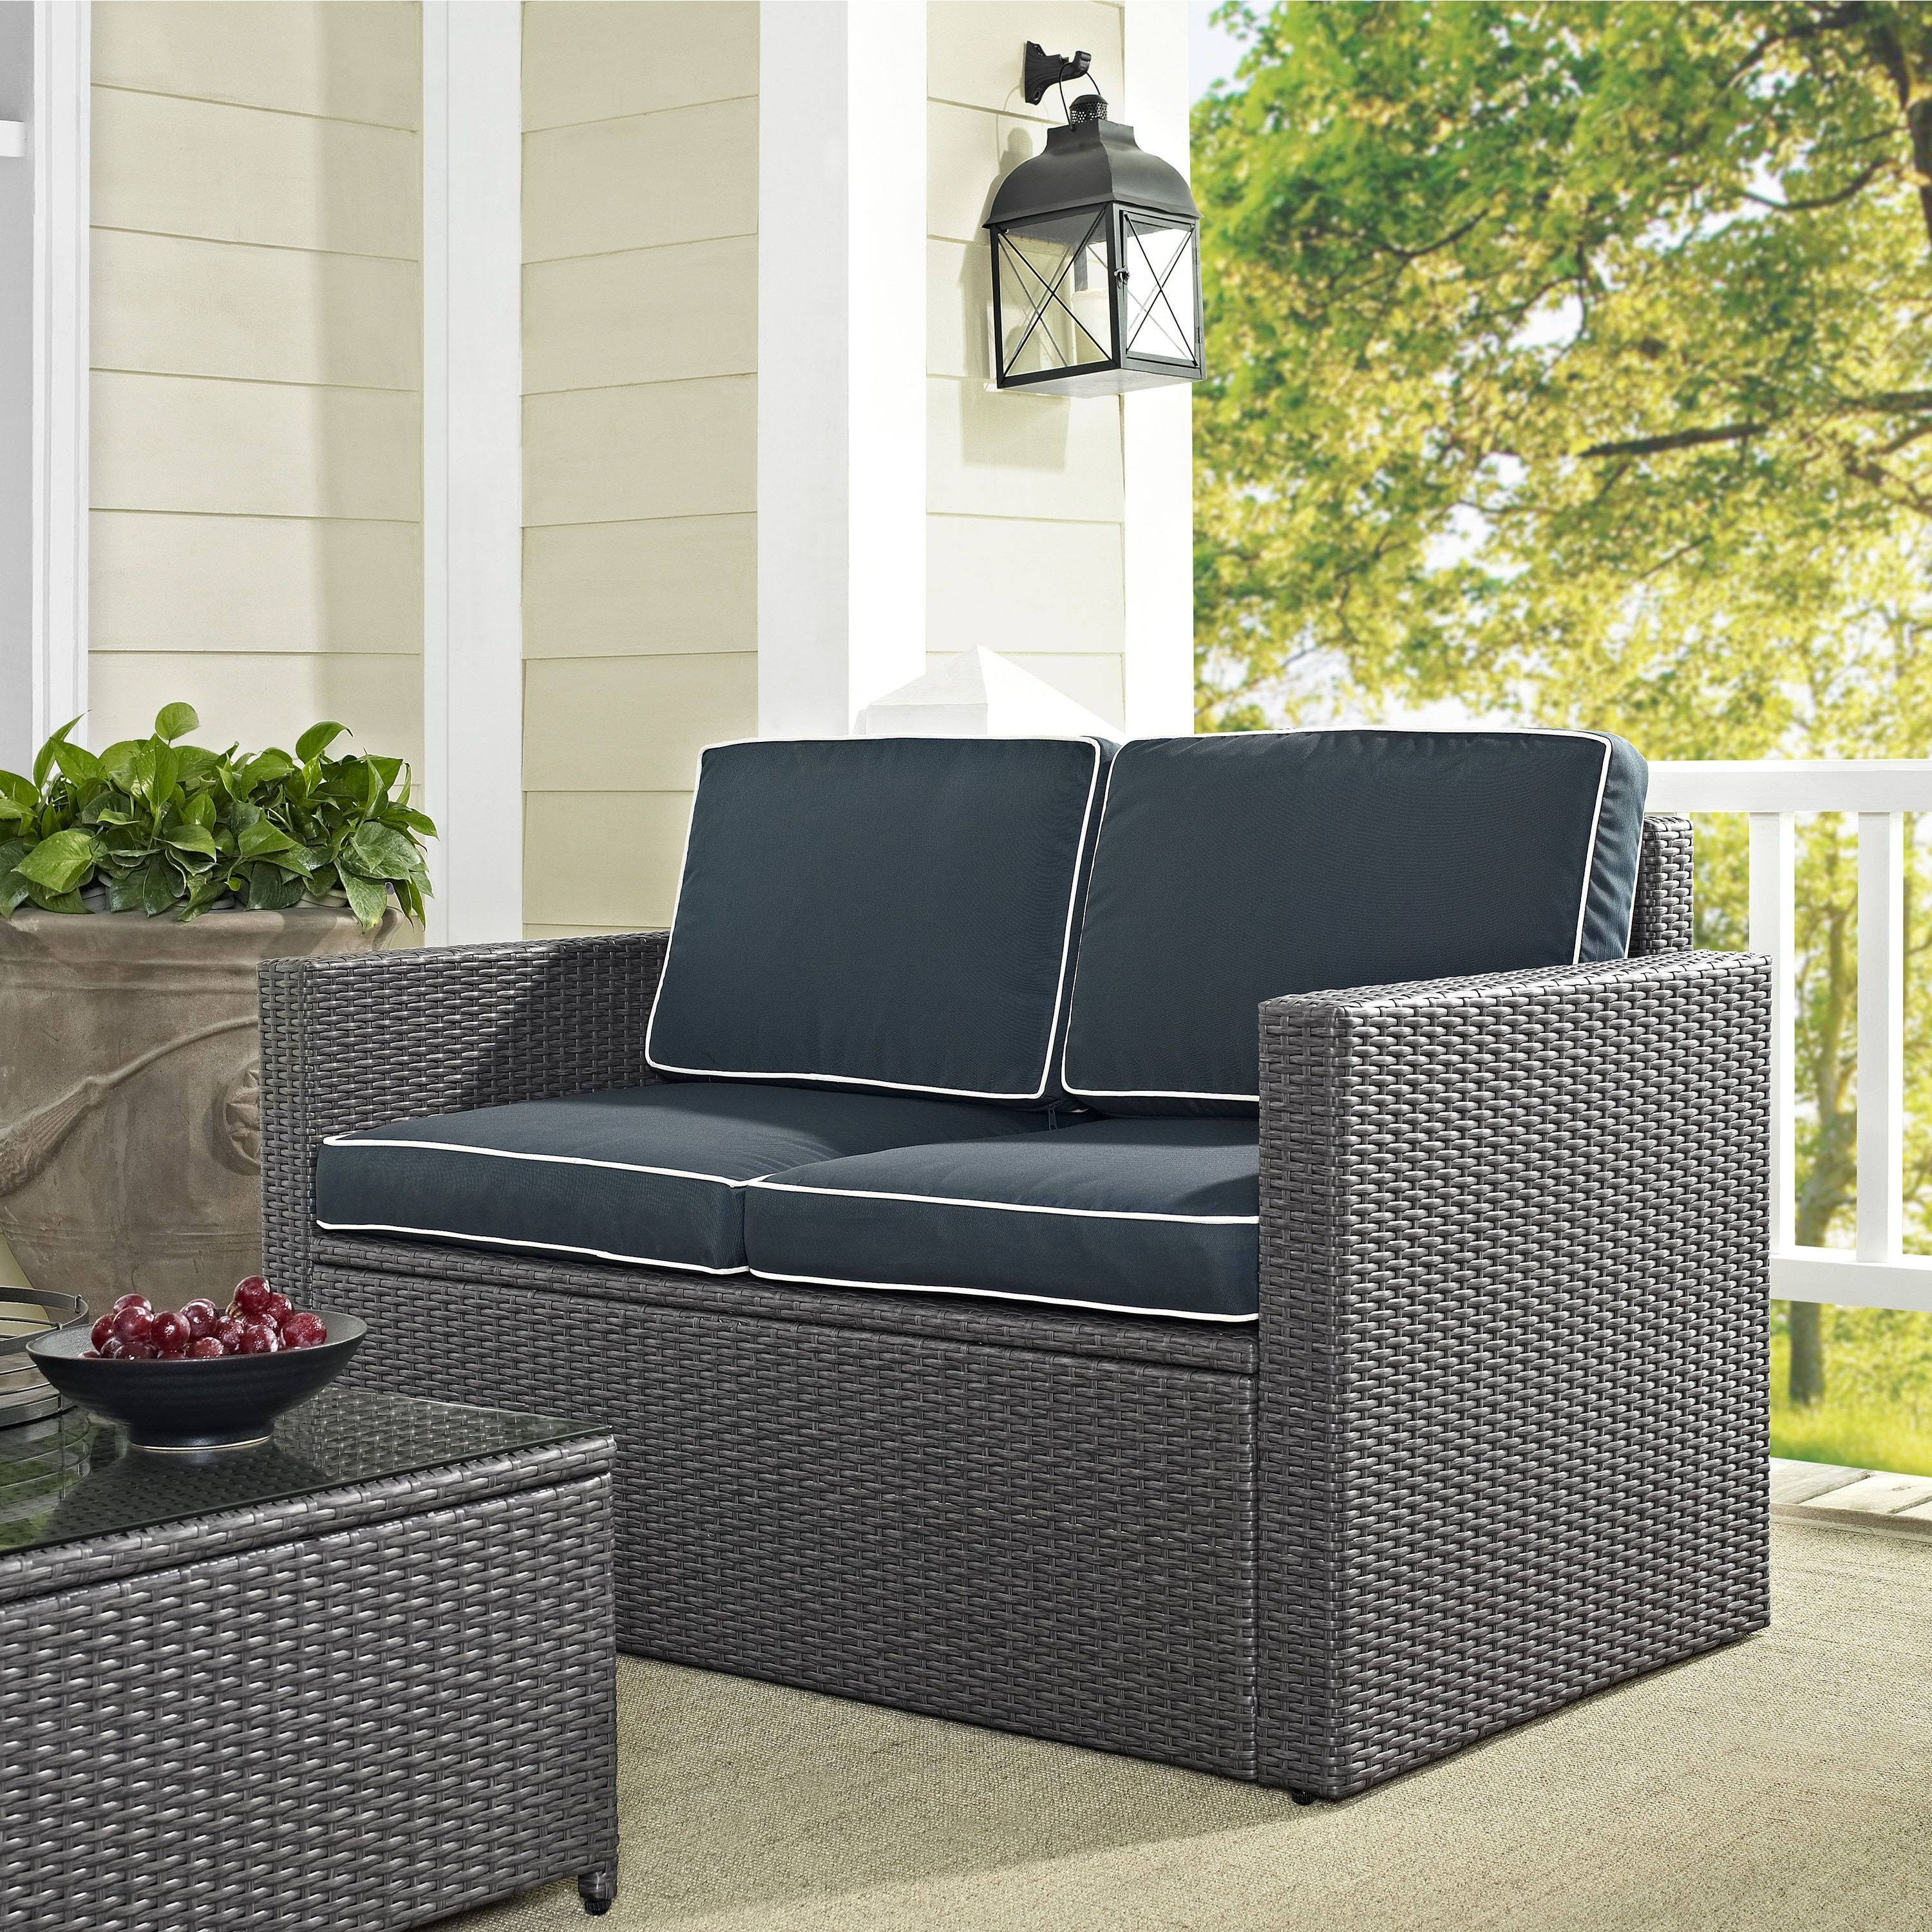 Provencher Patio Loveseats With Cushions Throughout Most Current Palm Harbor Outdoor Loveseat In Grey Wicker With Navy (View 16 of 20)